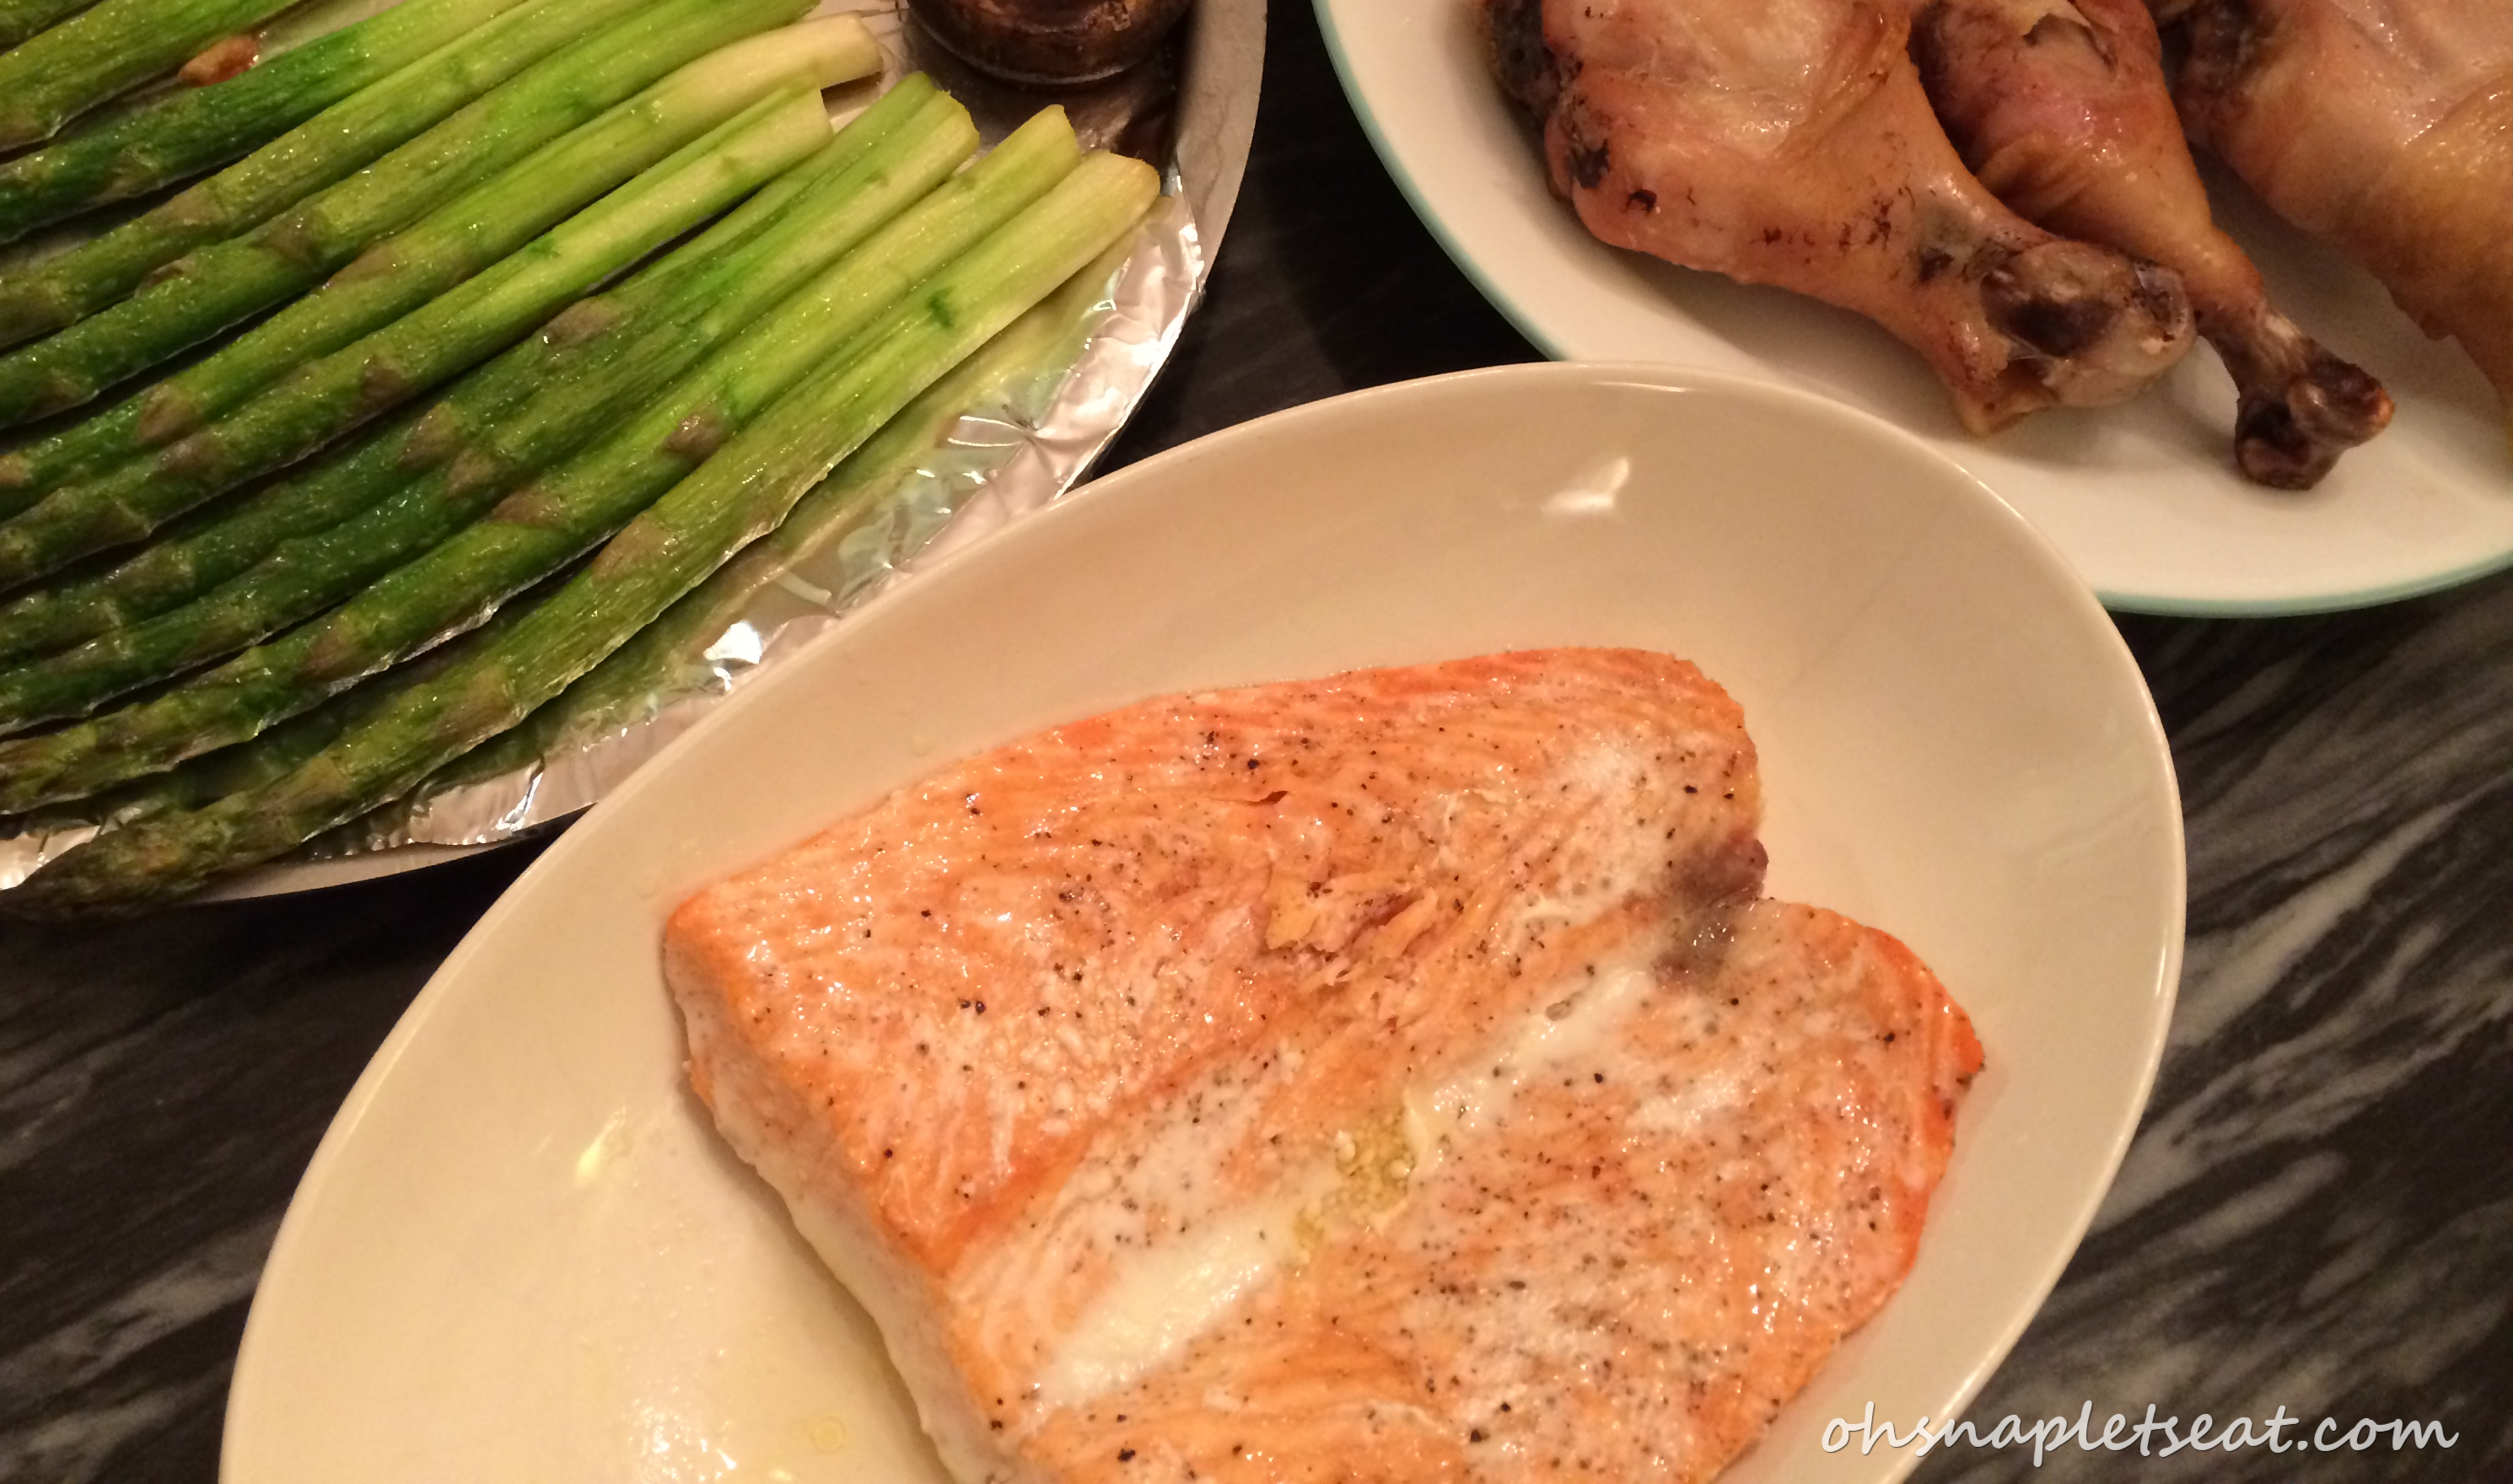 Oven Baked Salmon (A Super Easy Oven Baked Dinner Part I) | Oh Snap ...